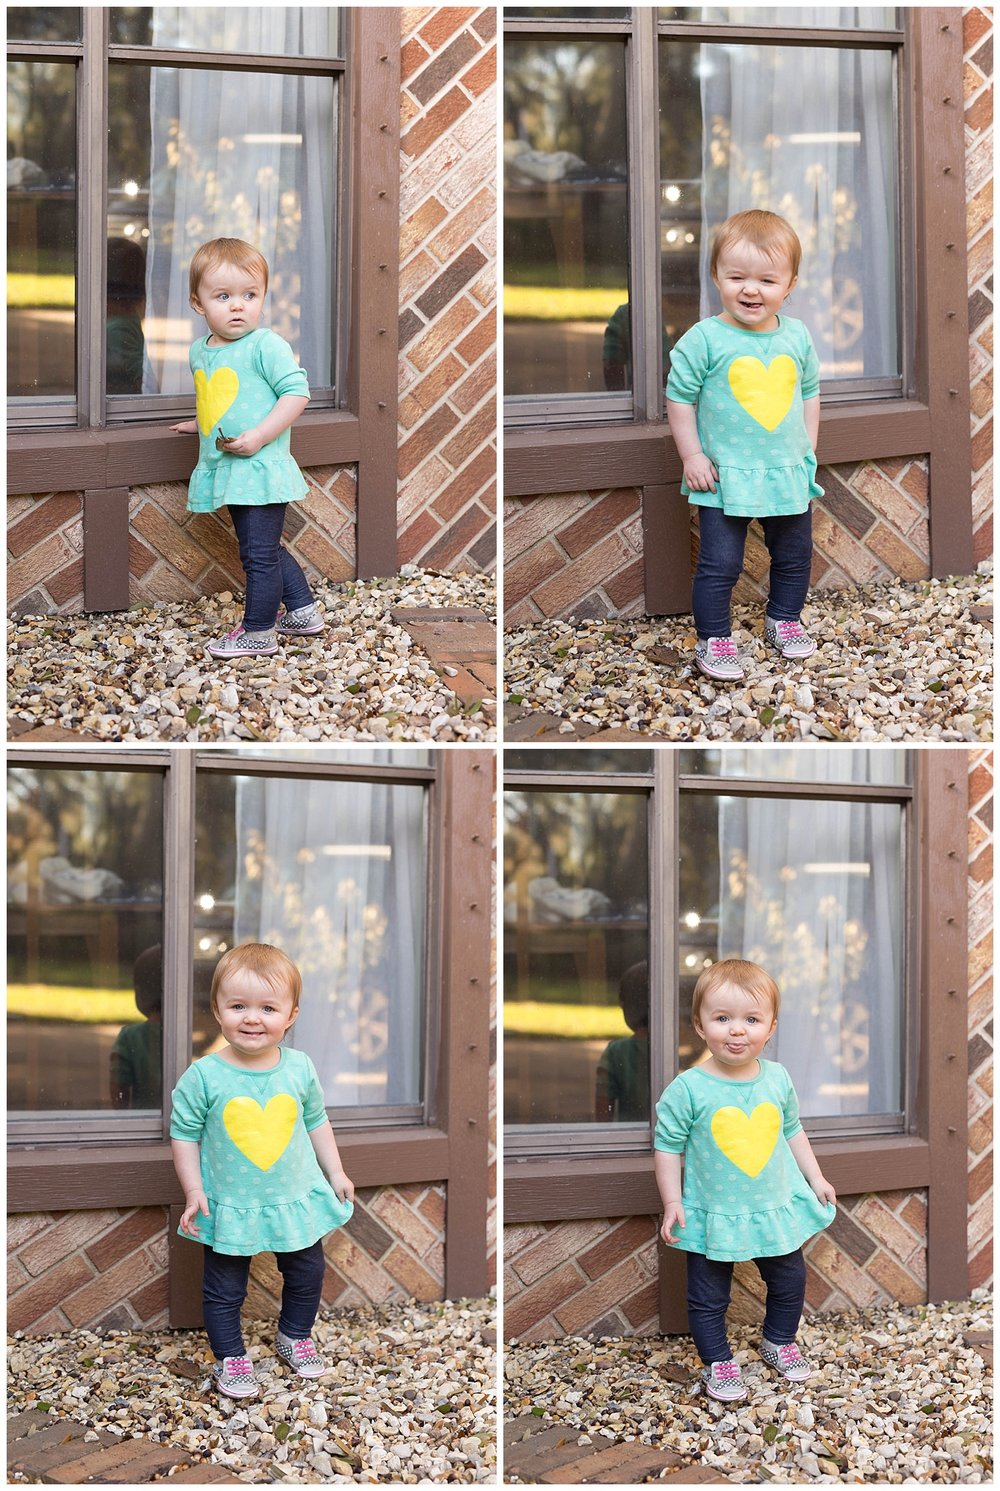 toddler girl making funny faces - Gulf Coast children's photographer